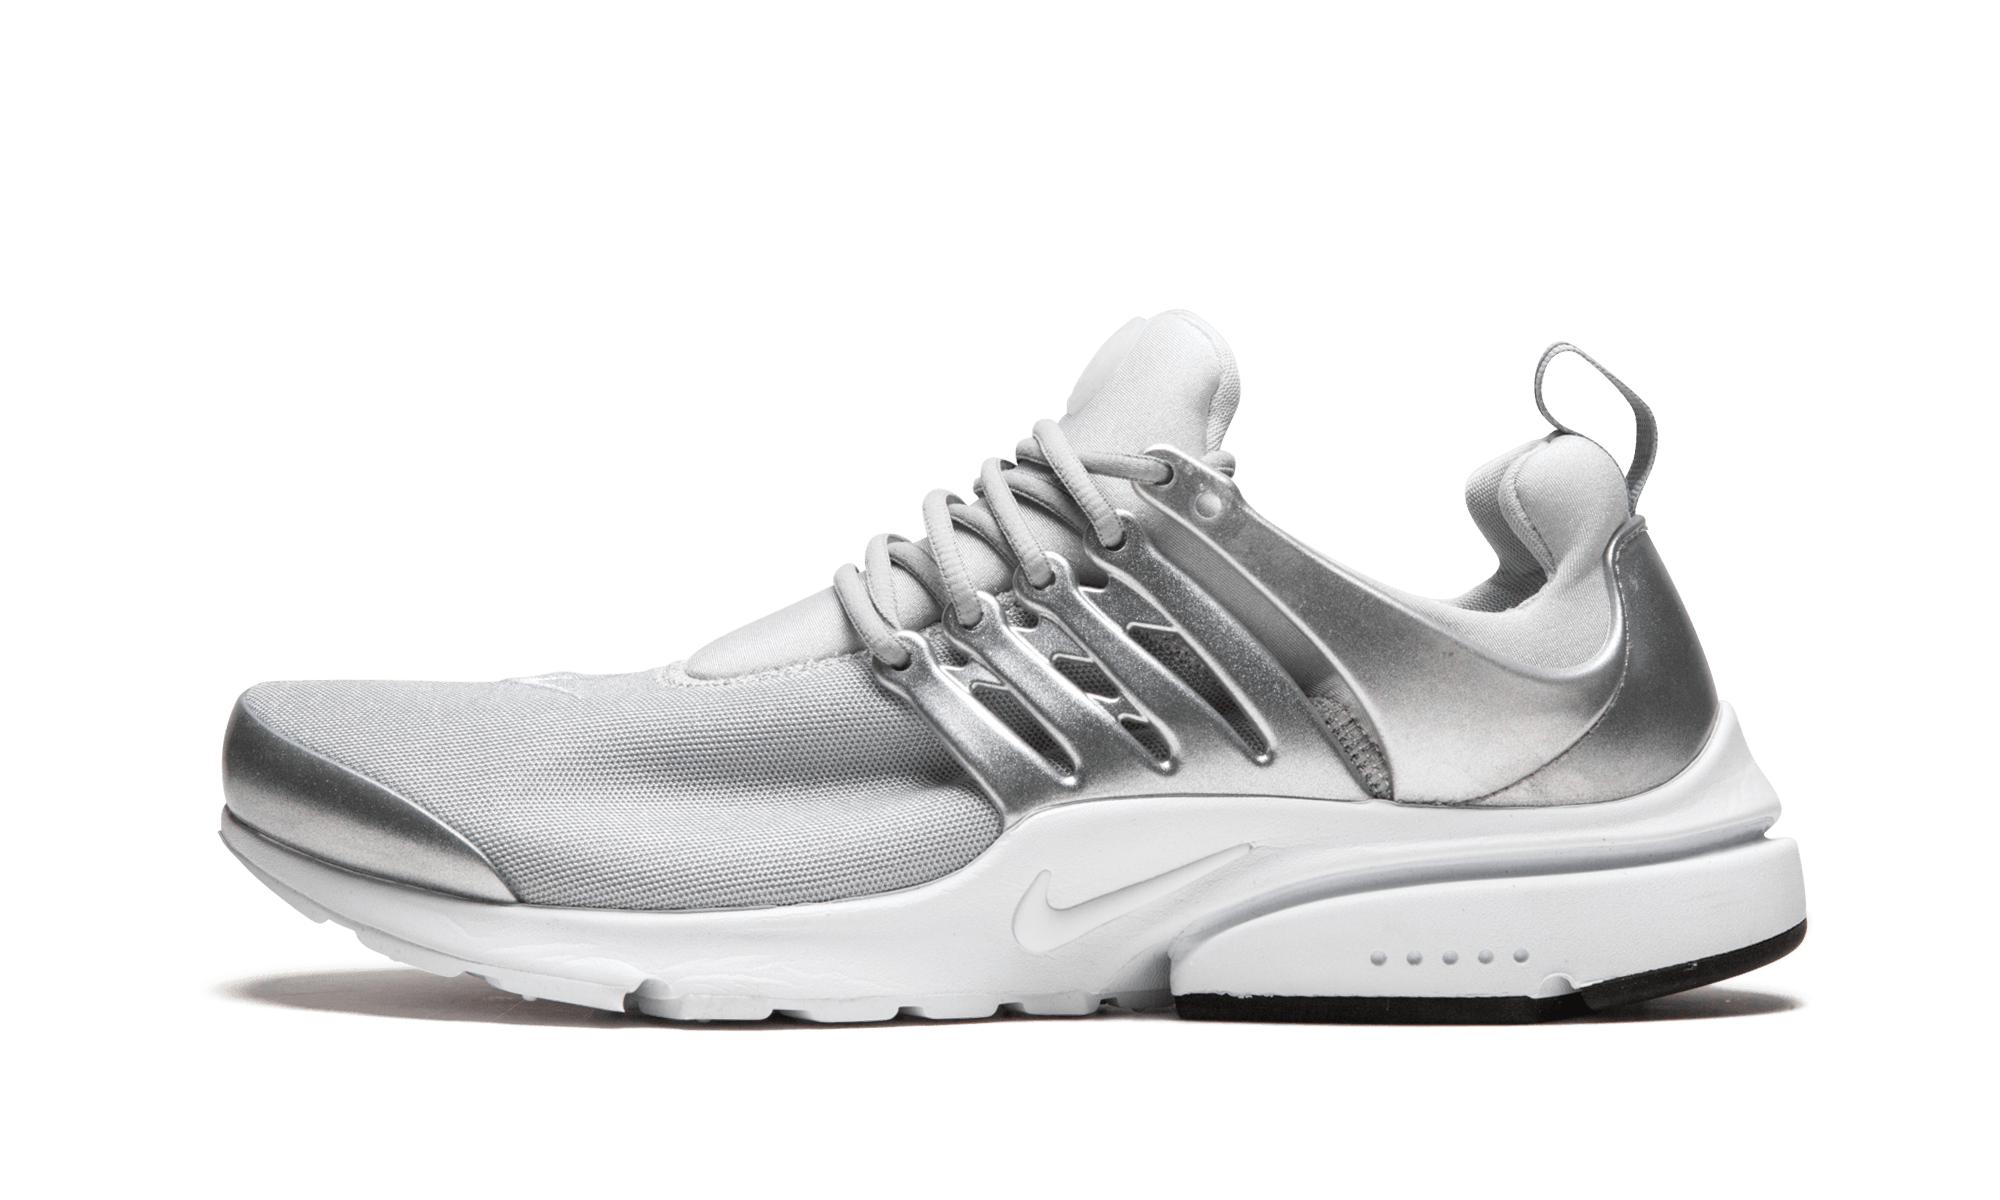 08c670fb8932 Lyst - Nike Air Presto Premium in Metallic for Men - Save 9%